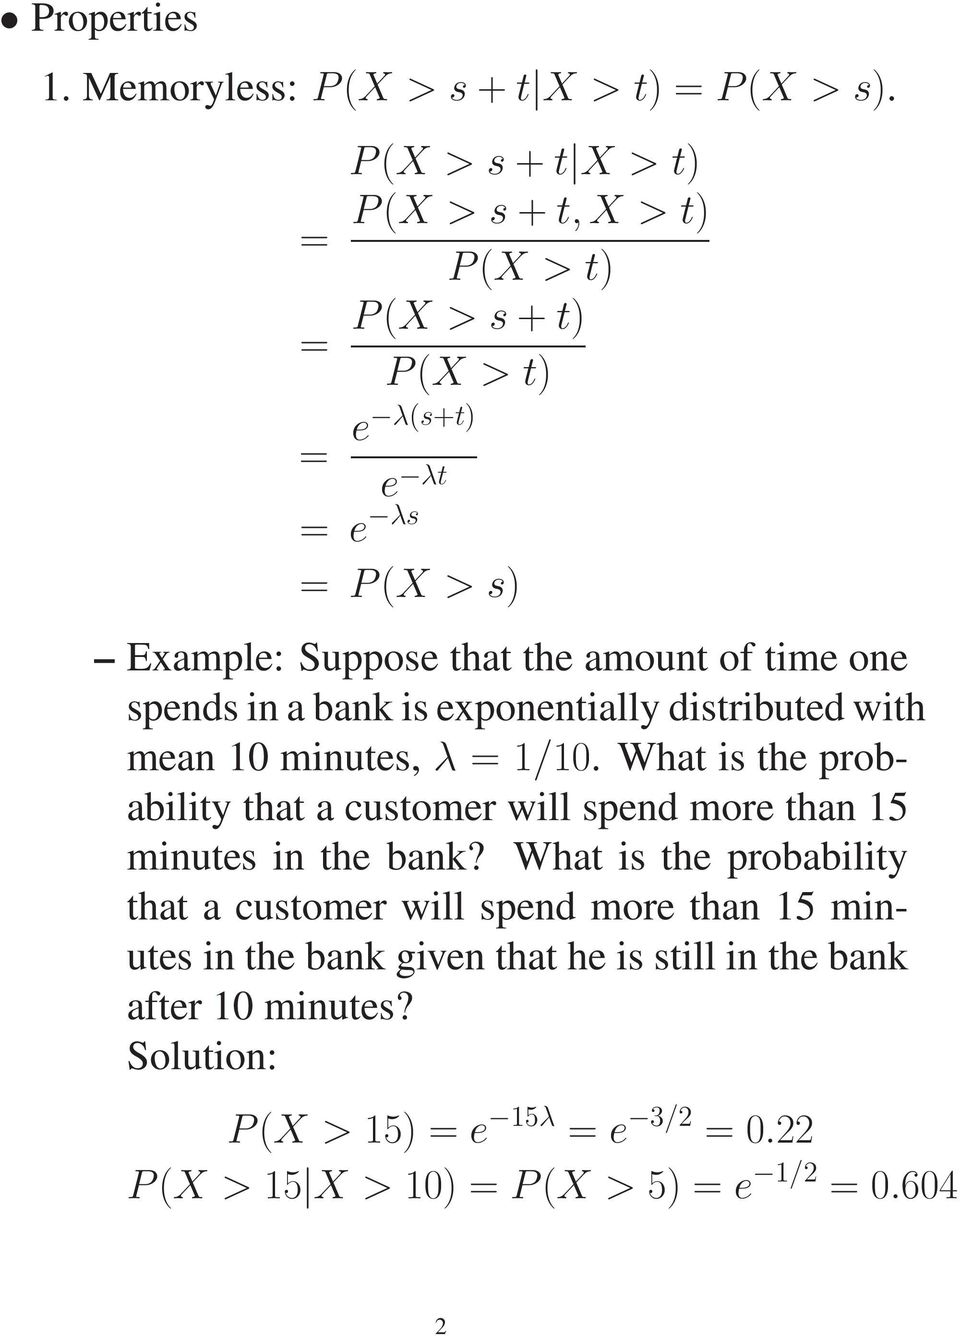 one spends in a bank is exponentially distributed with mean 10 minutes, λ = 1/10.